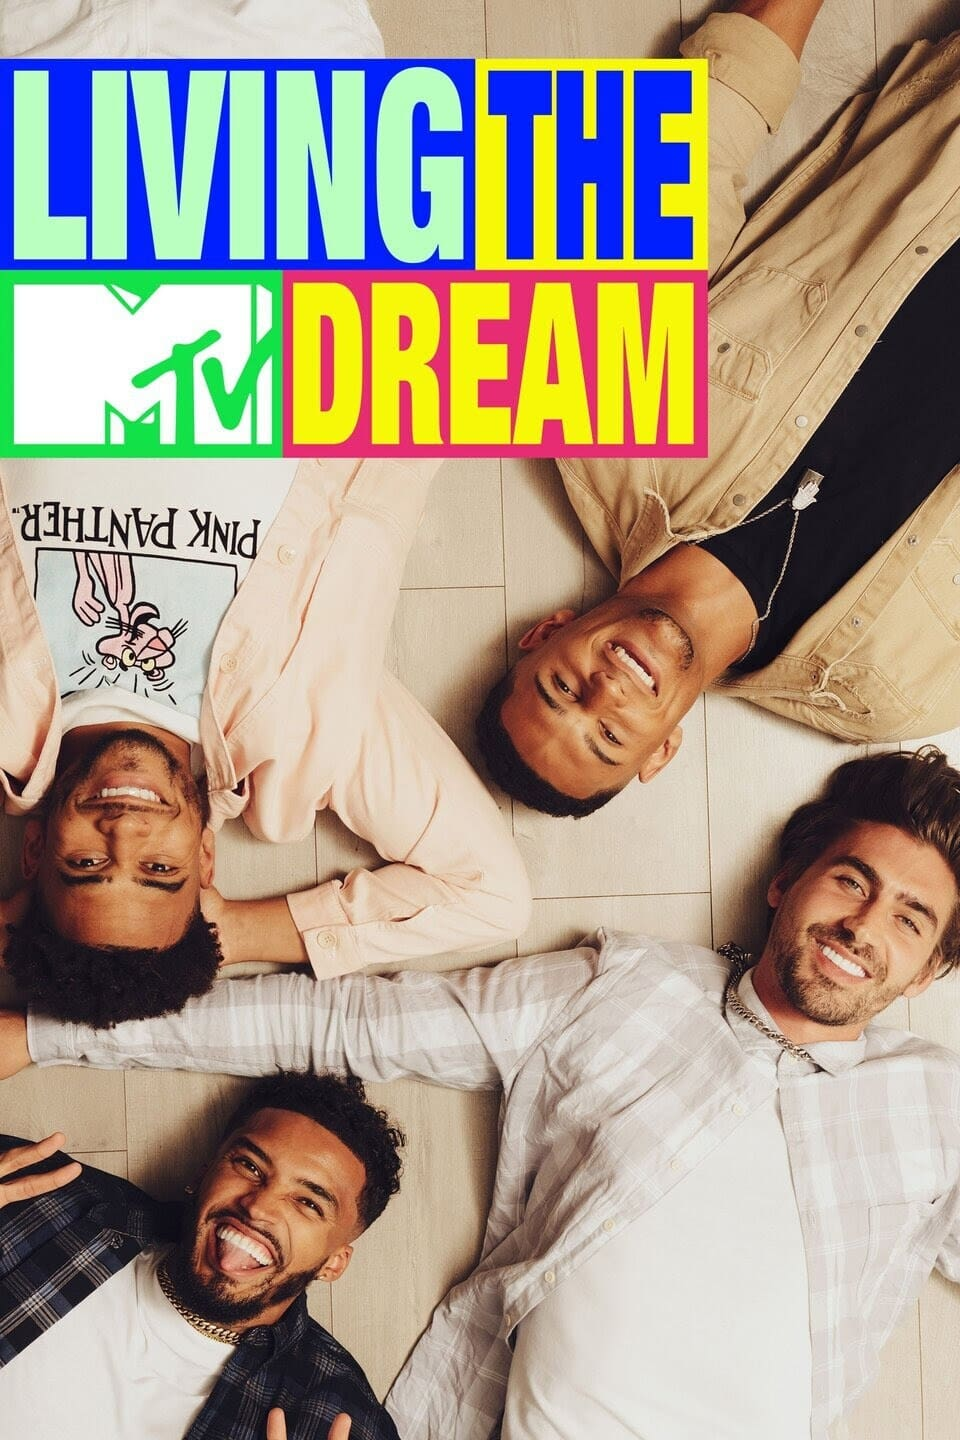 MTV's Living the Dream